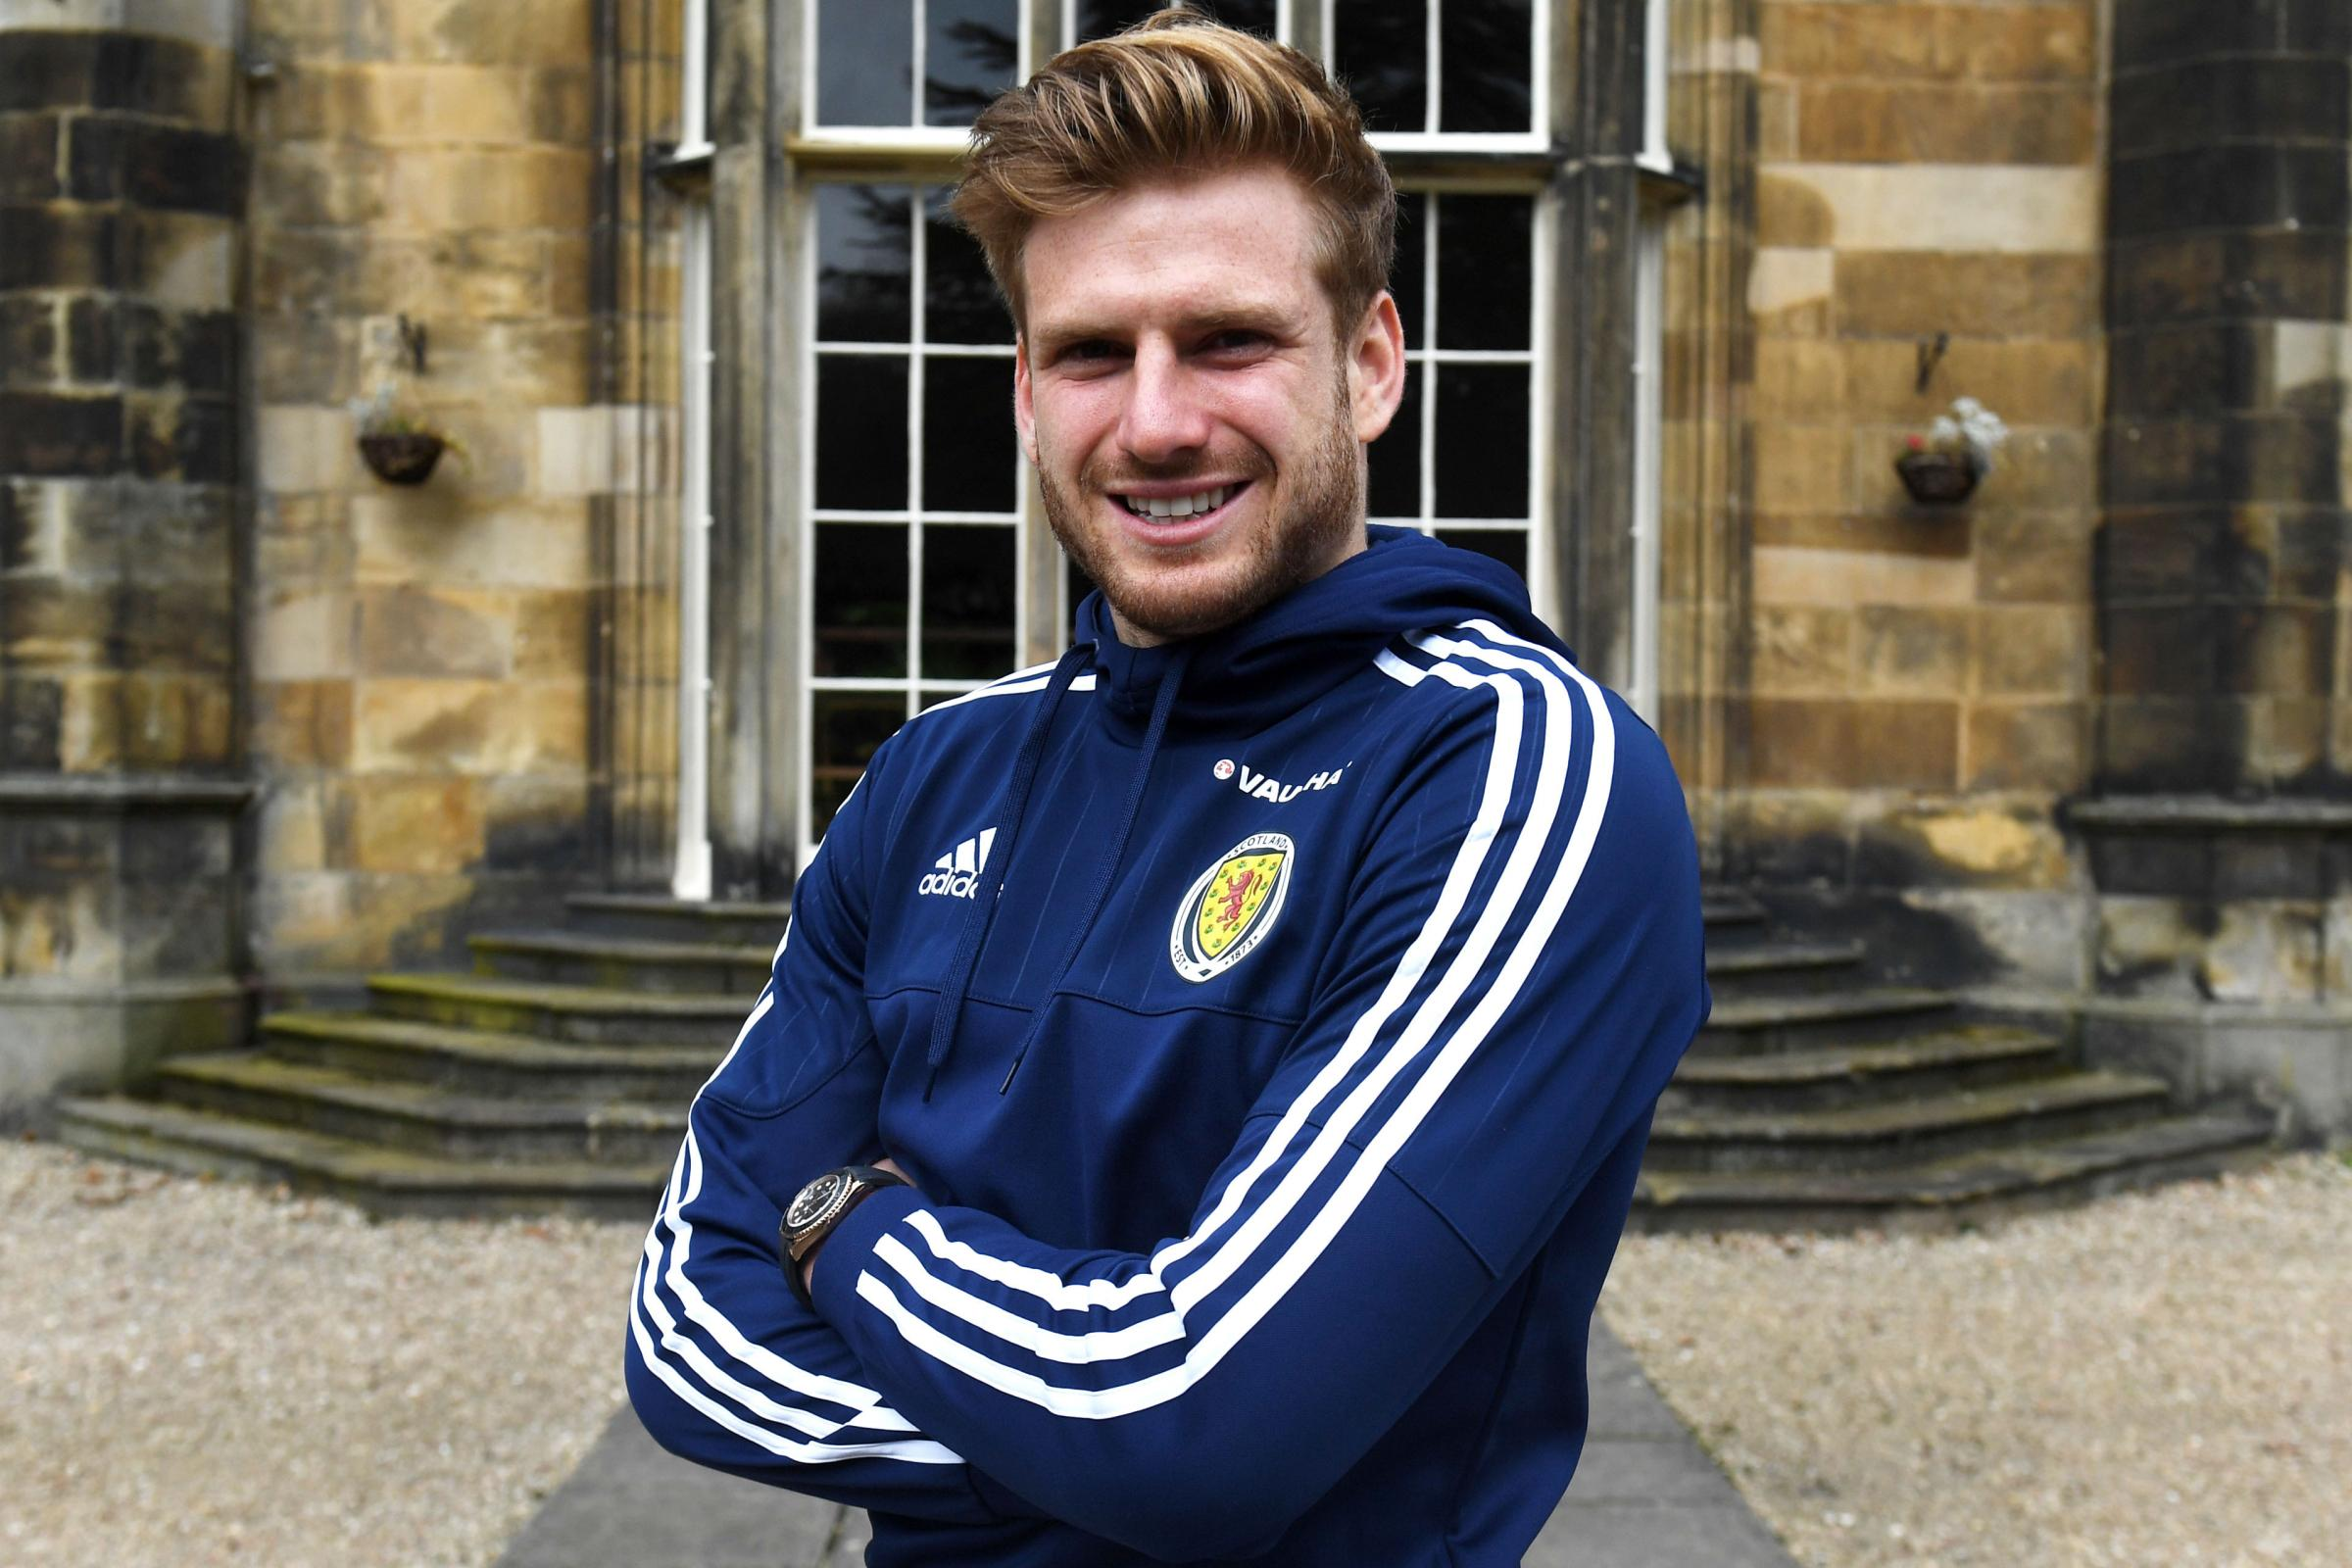 Celtic midfielder Stuart Armstrong relaxed about high expectations ahead of his hotly anticipated Scotland debut